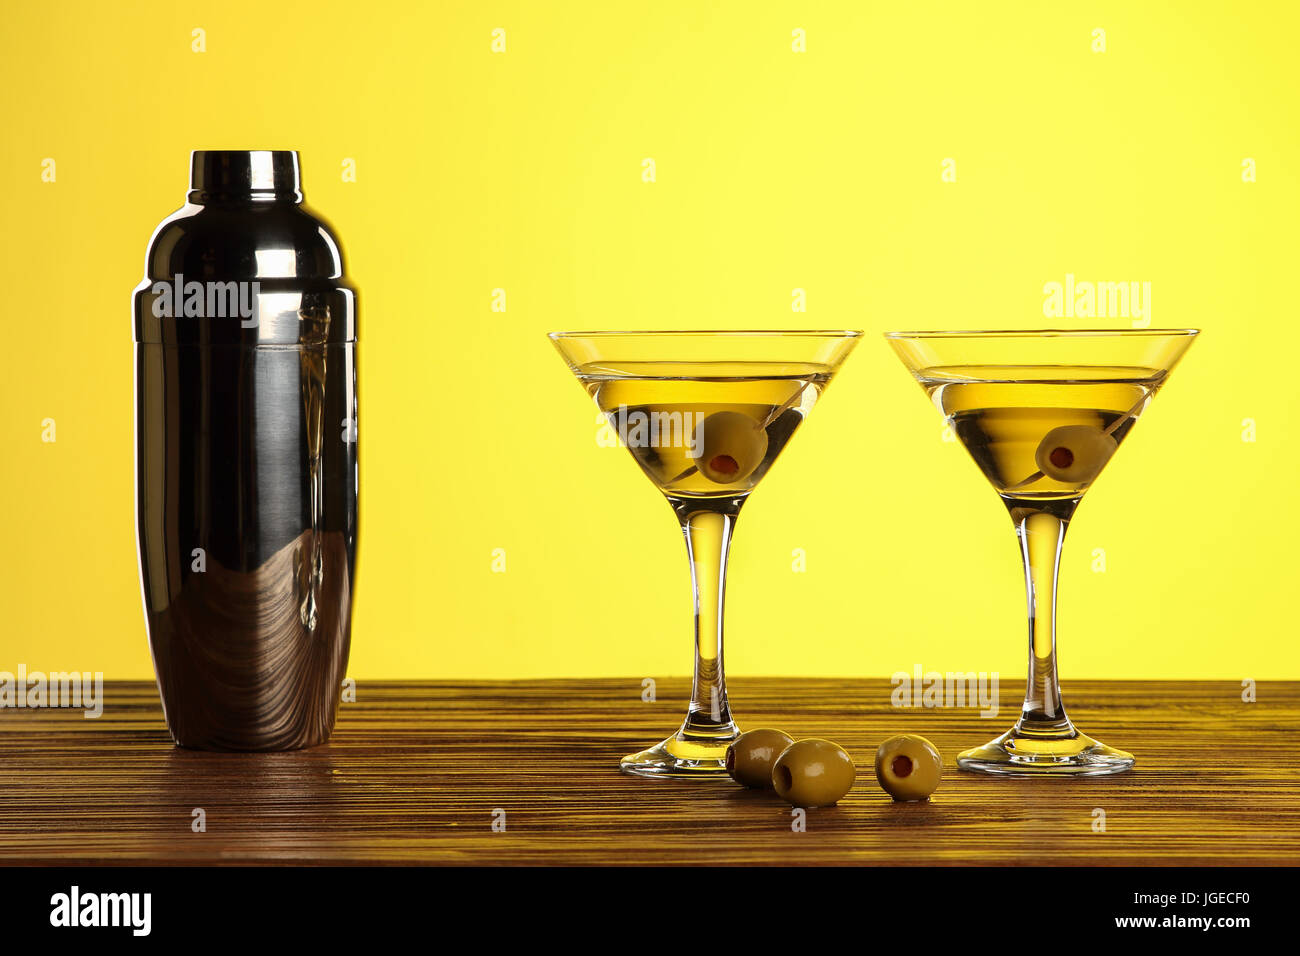 Two cocktails in martini glasses with green olives and shaker on a wooden surface against yellow background with Stock Photo